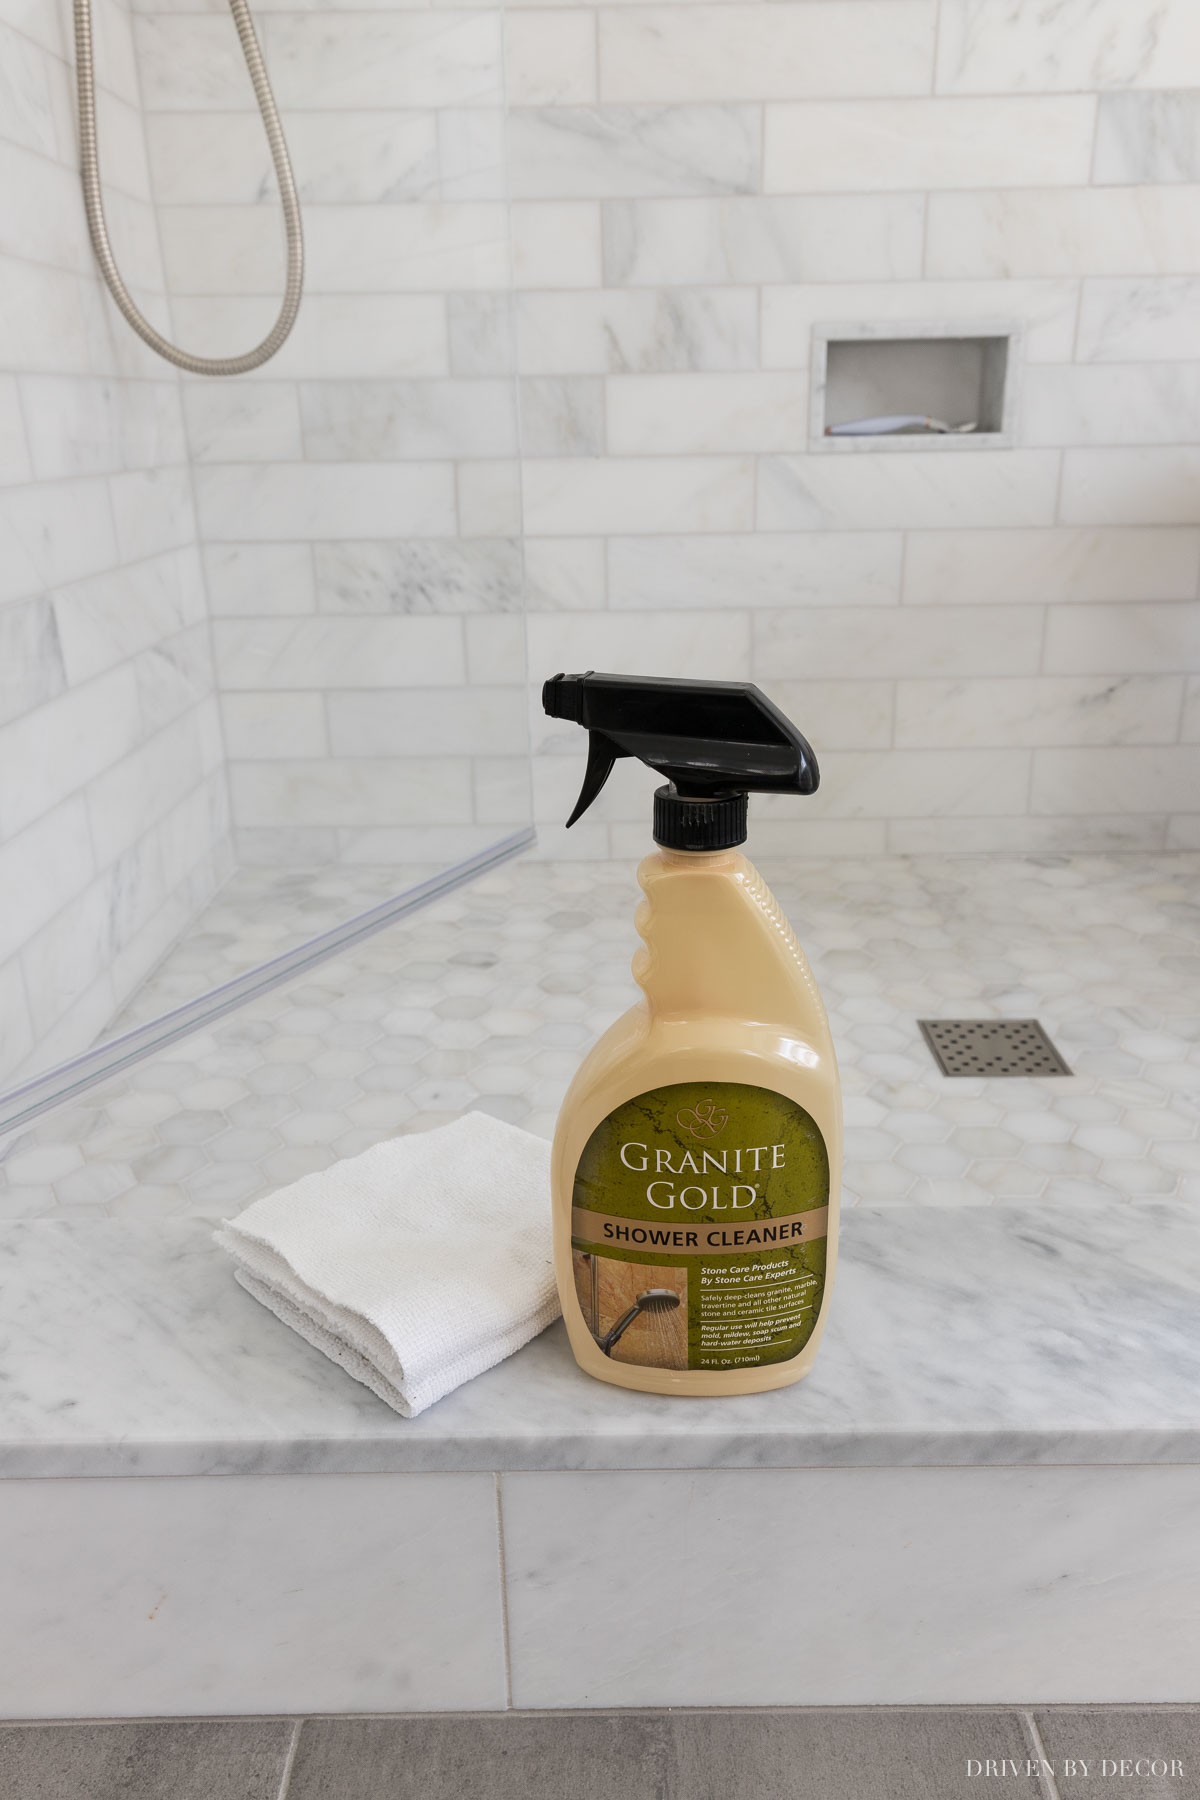 The marble shower bathroom cleaner that we use!